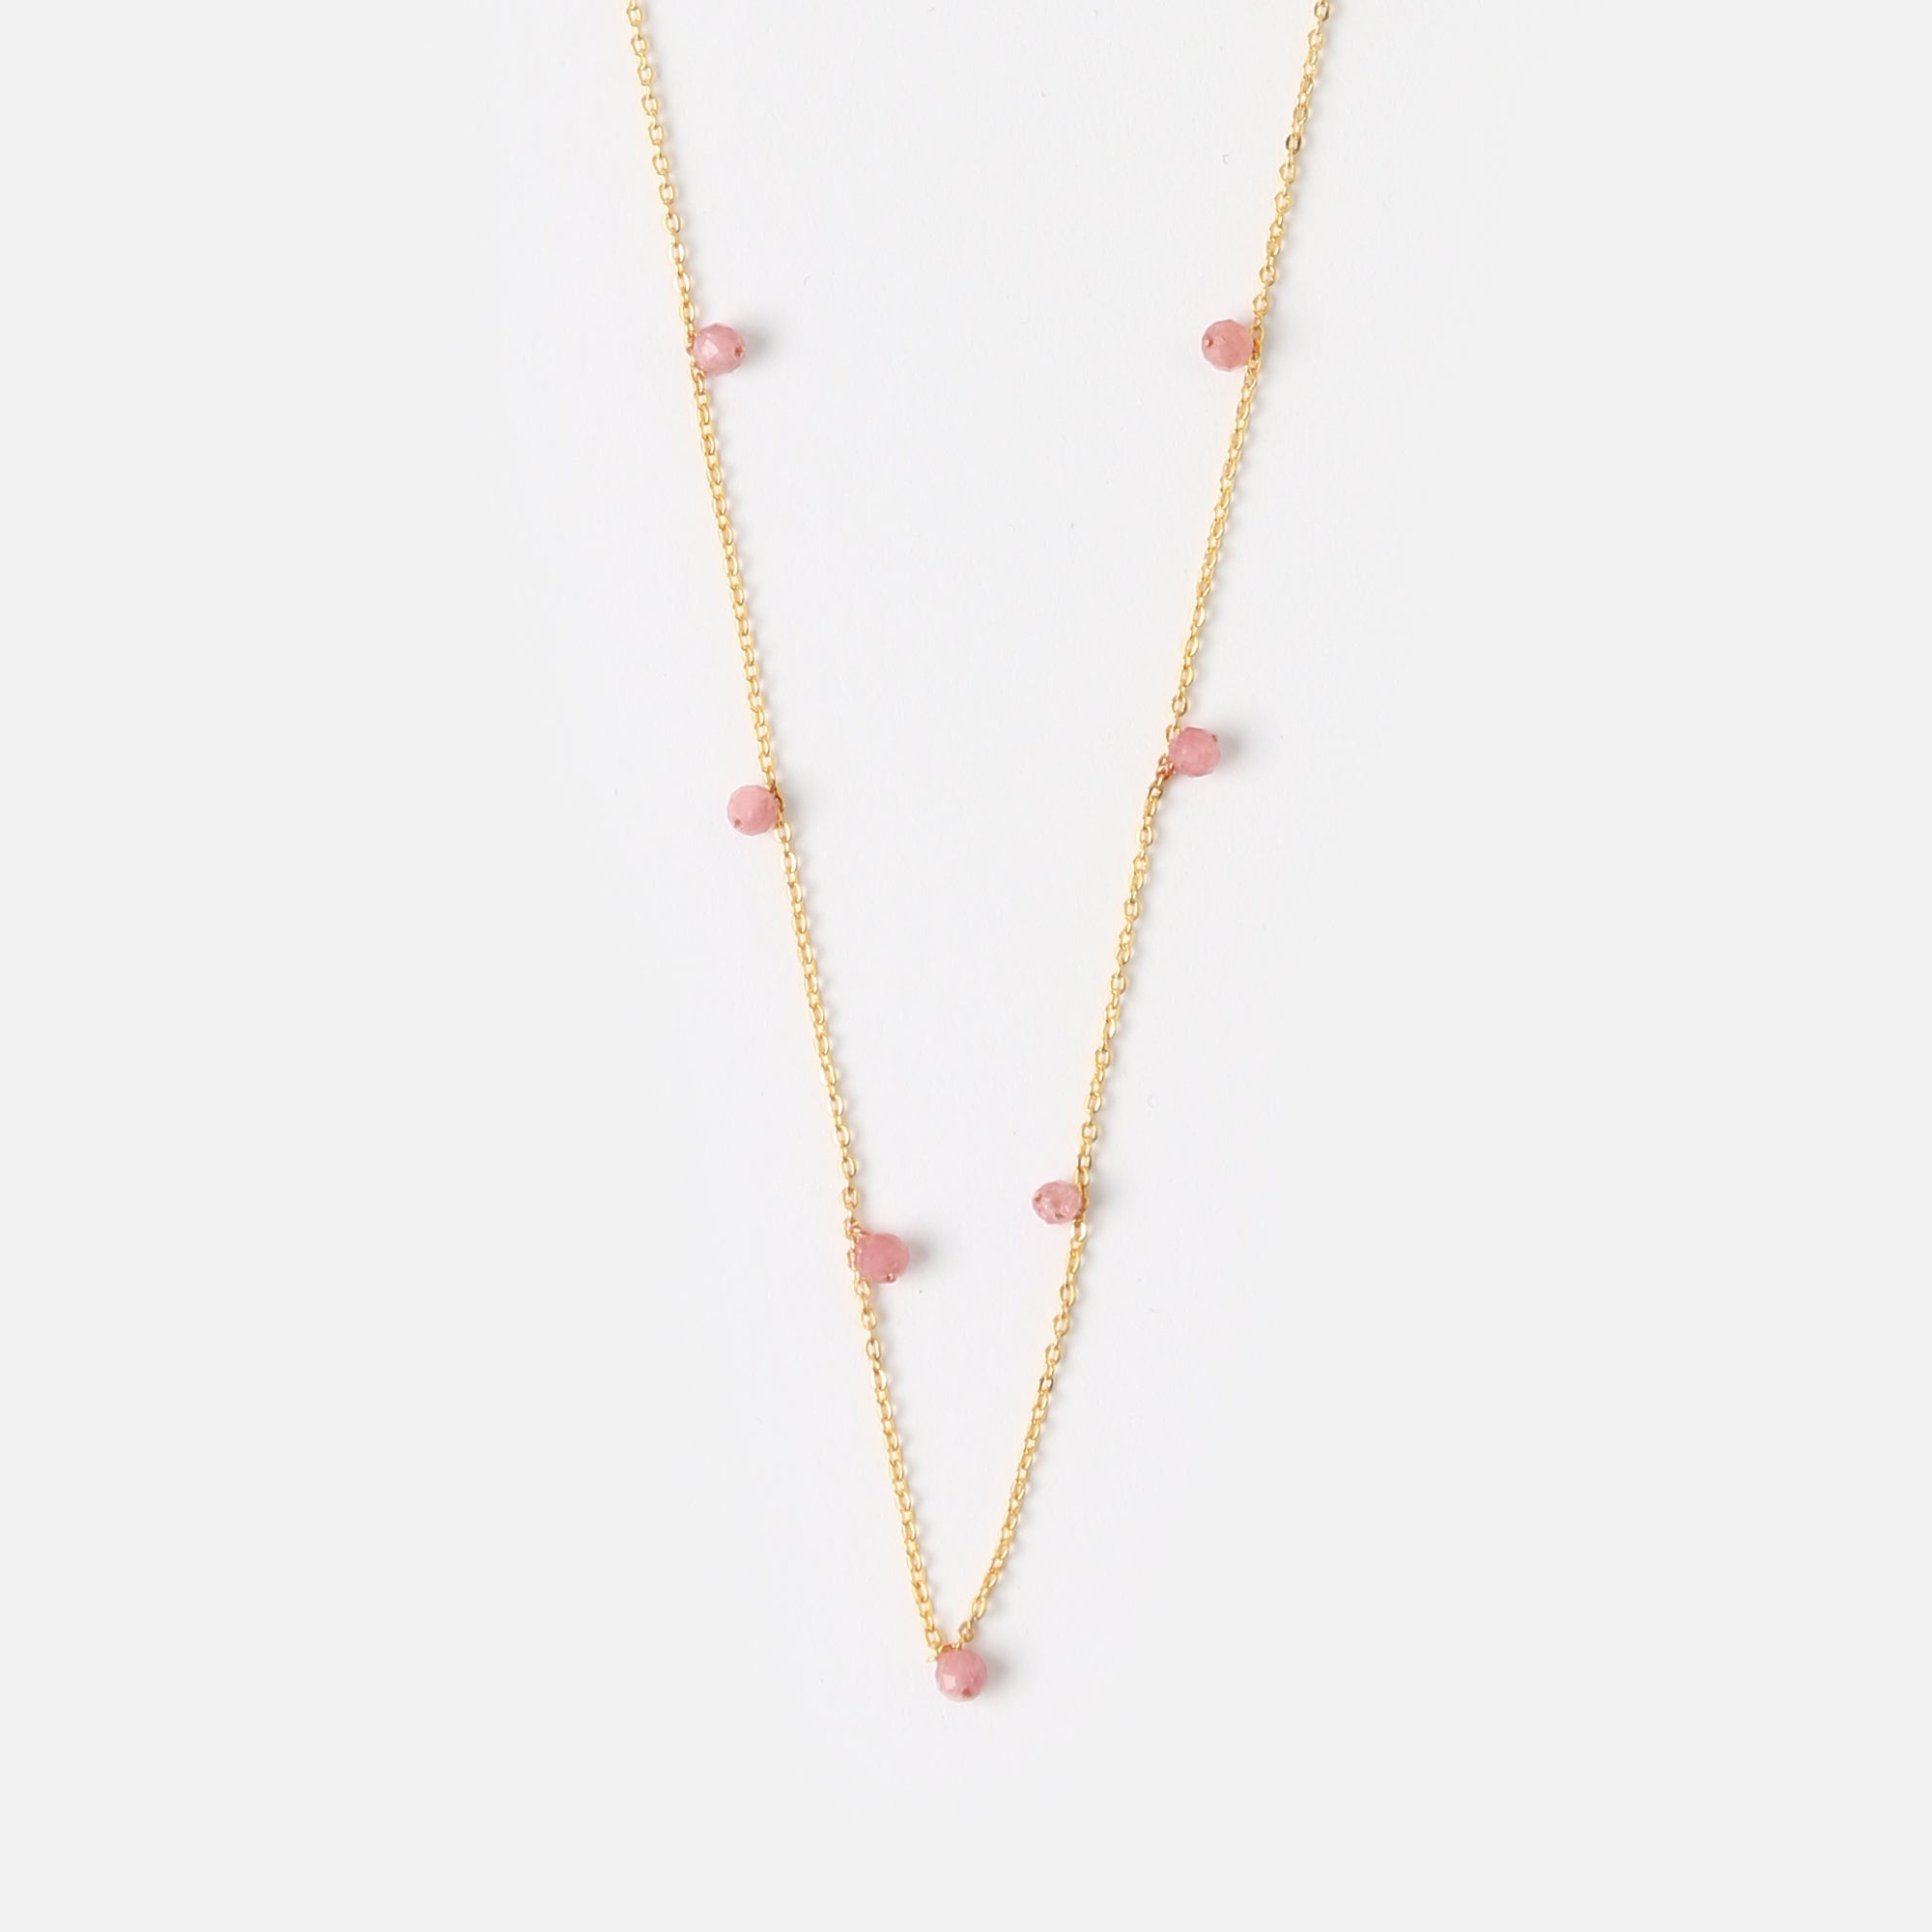 Semi Precious Fine Rose Quartz Drop Necklace